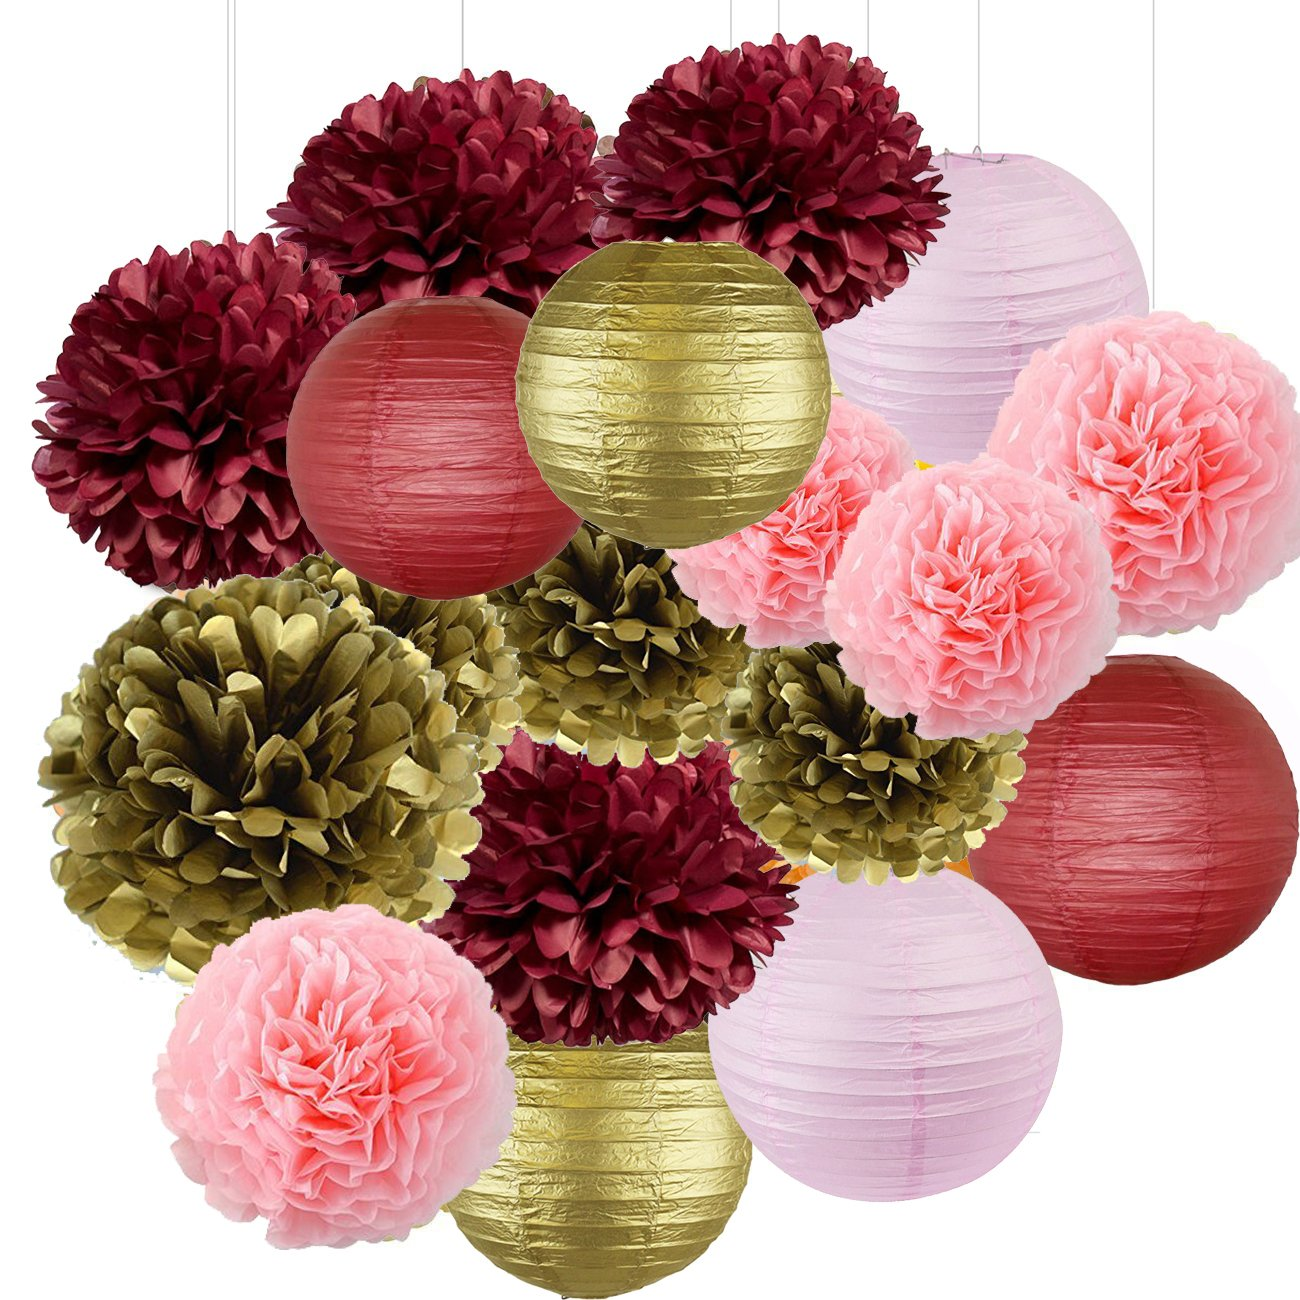 Sogorge Bridal Shower Decorations 18pcs Burgundy Pink Gold Birthday Decorations Tissue Paper Pom Pom and Paper Lanterns Photo Backdrop Wedding/Bachelorette Party Decorations